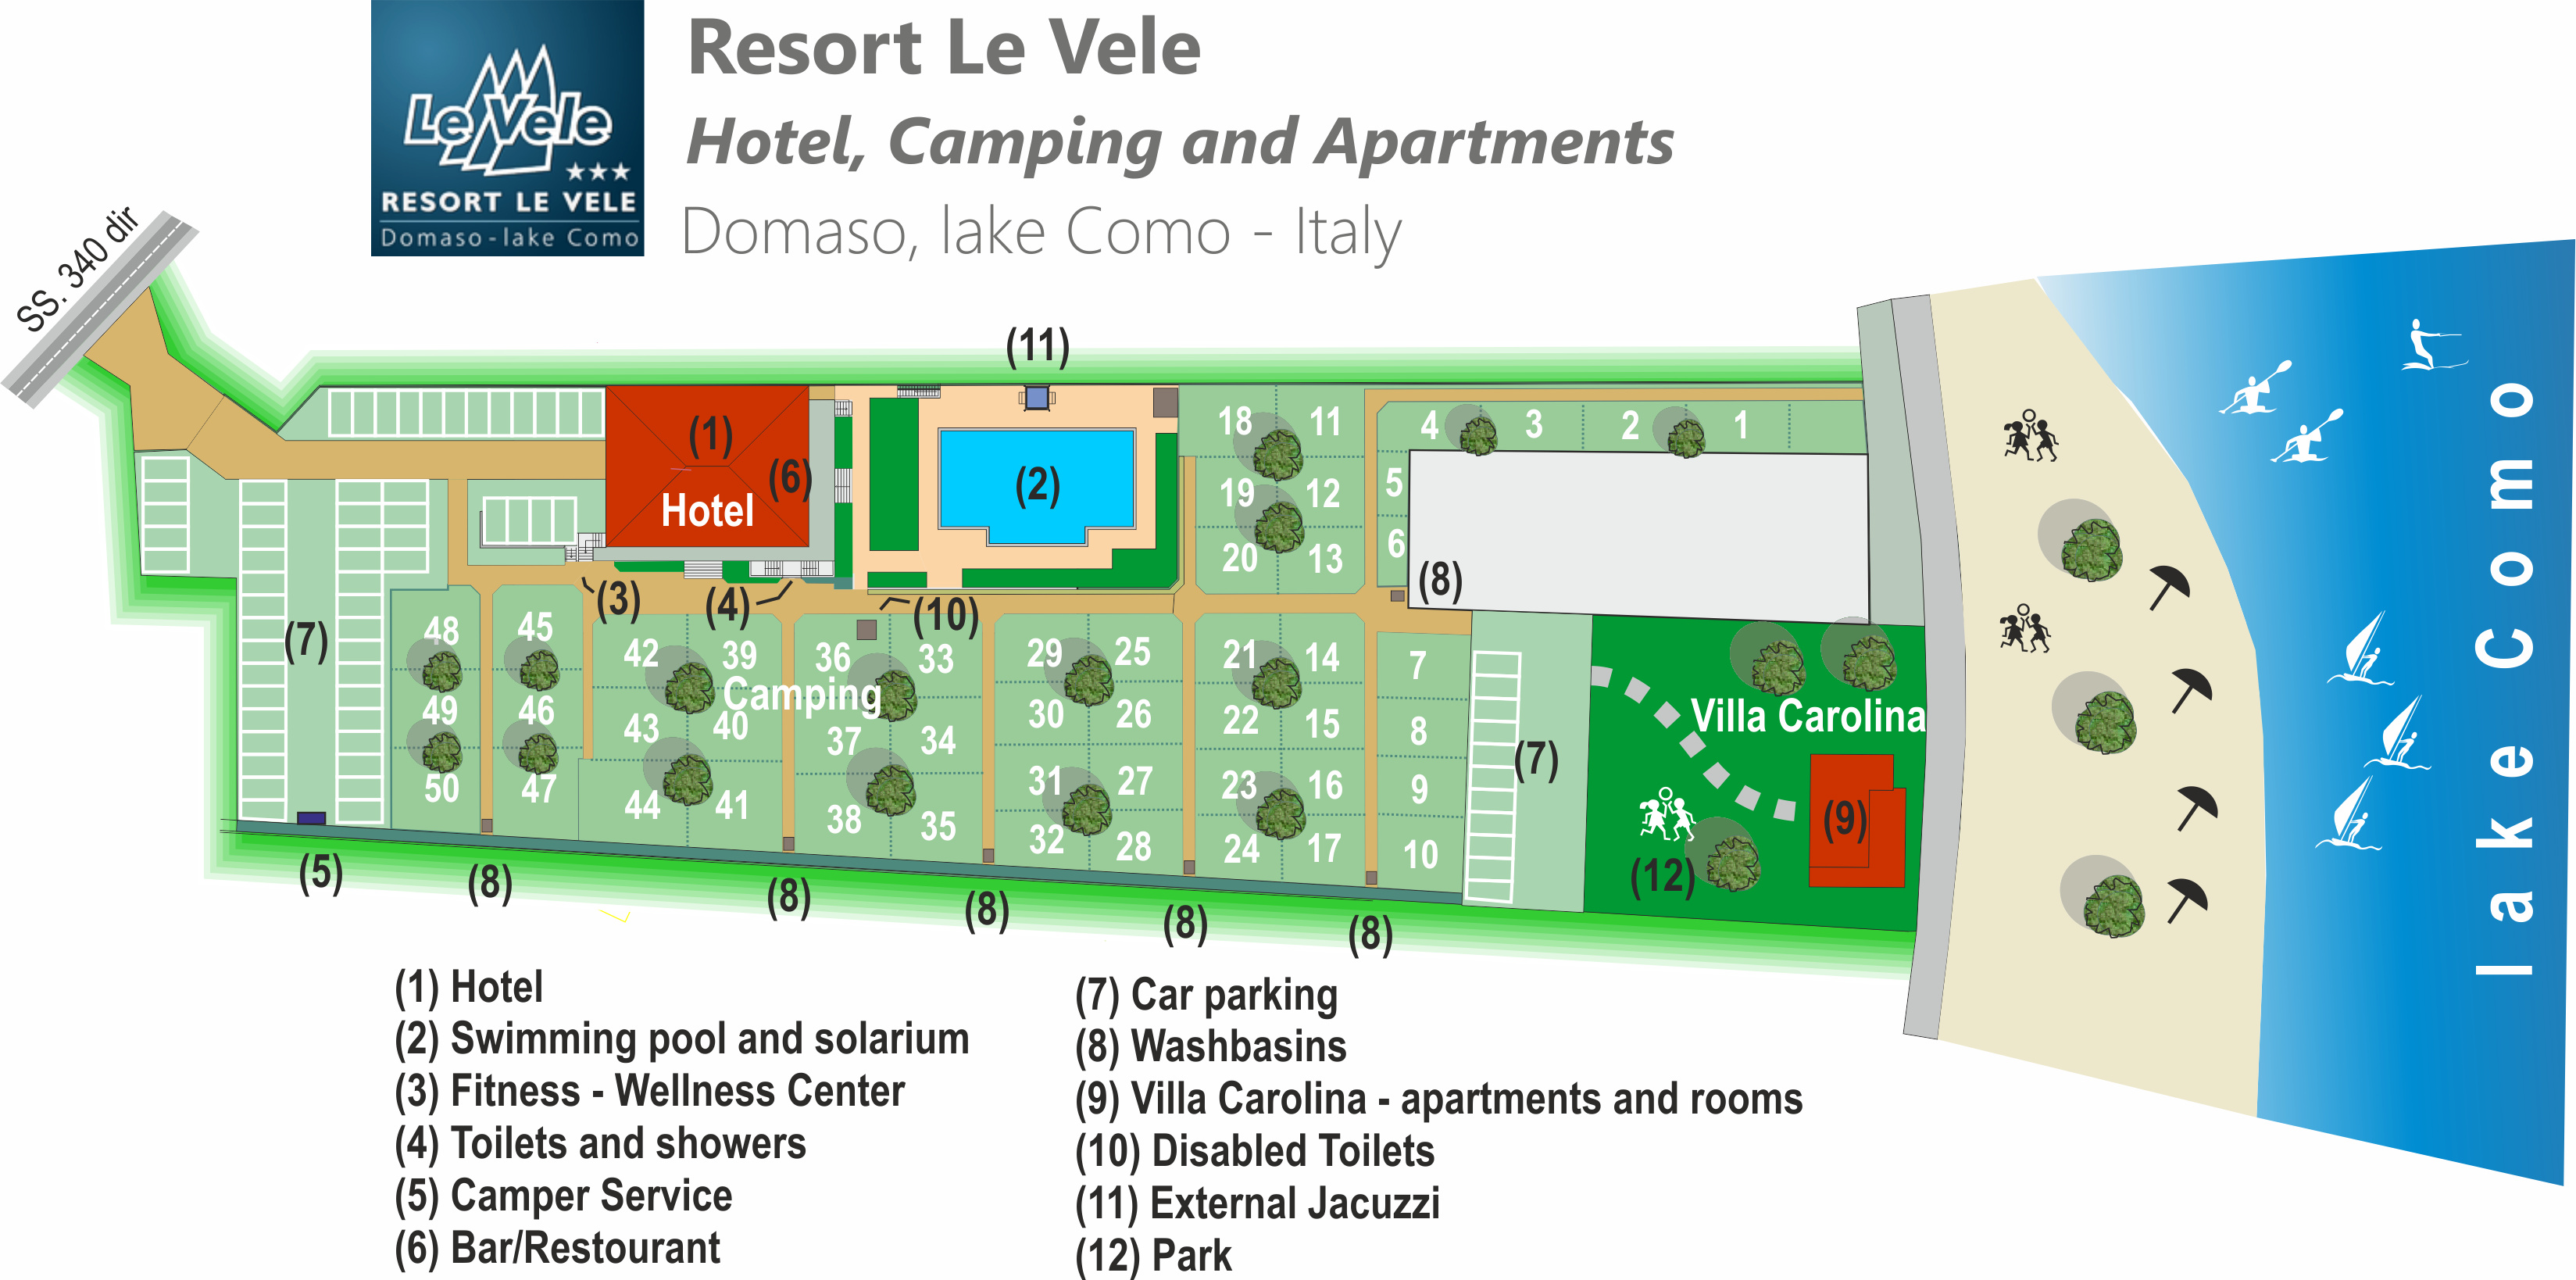 Resort le vele Domaso lake Como - hotel, camping, apartments lake como